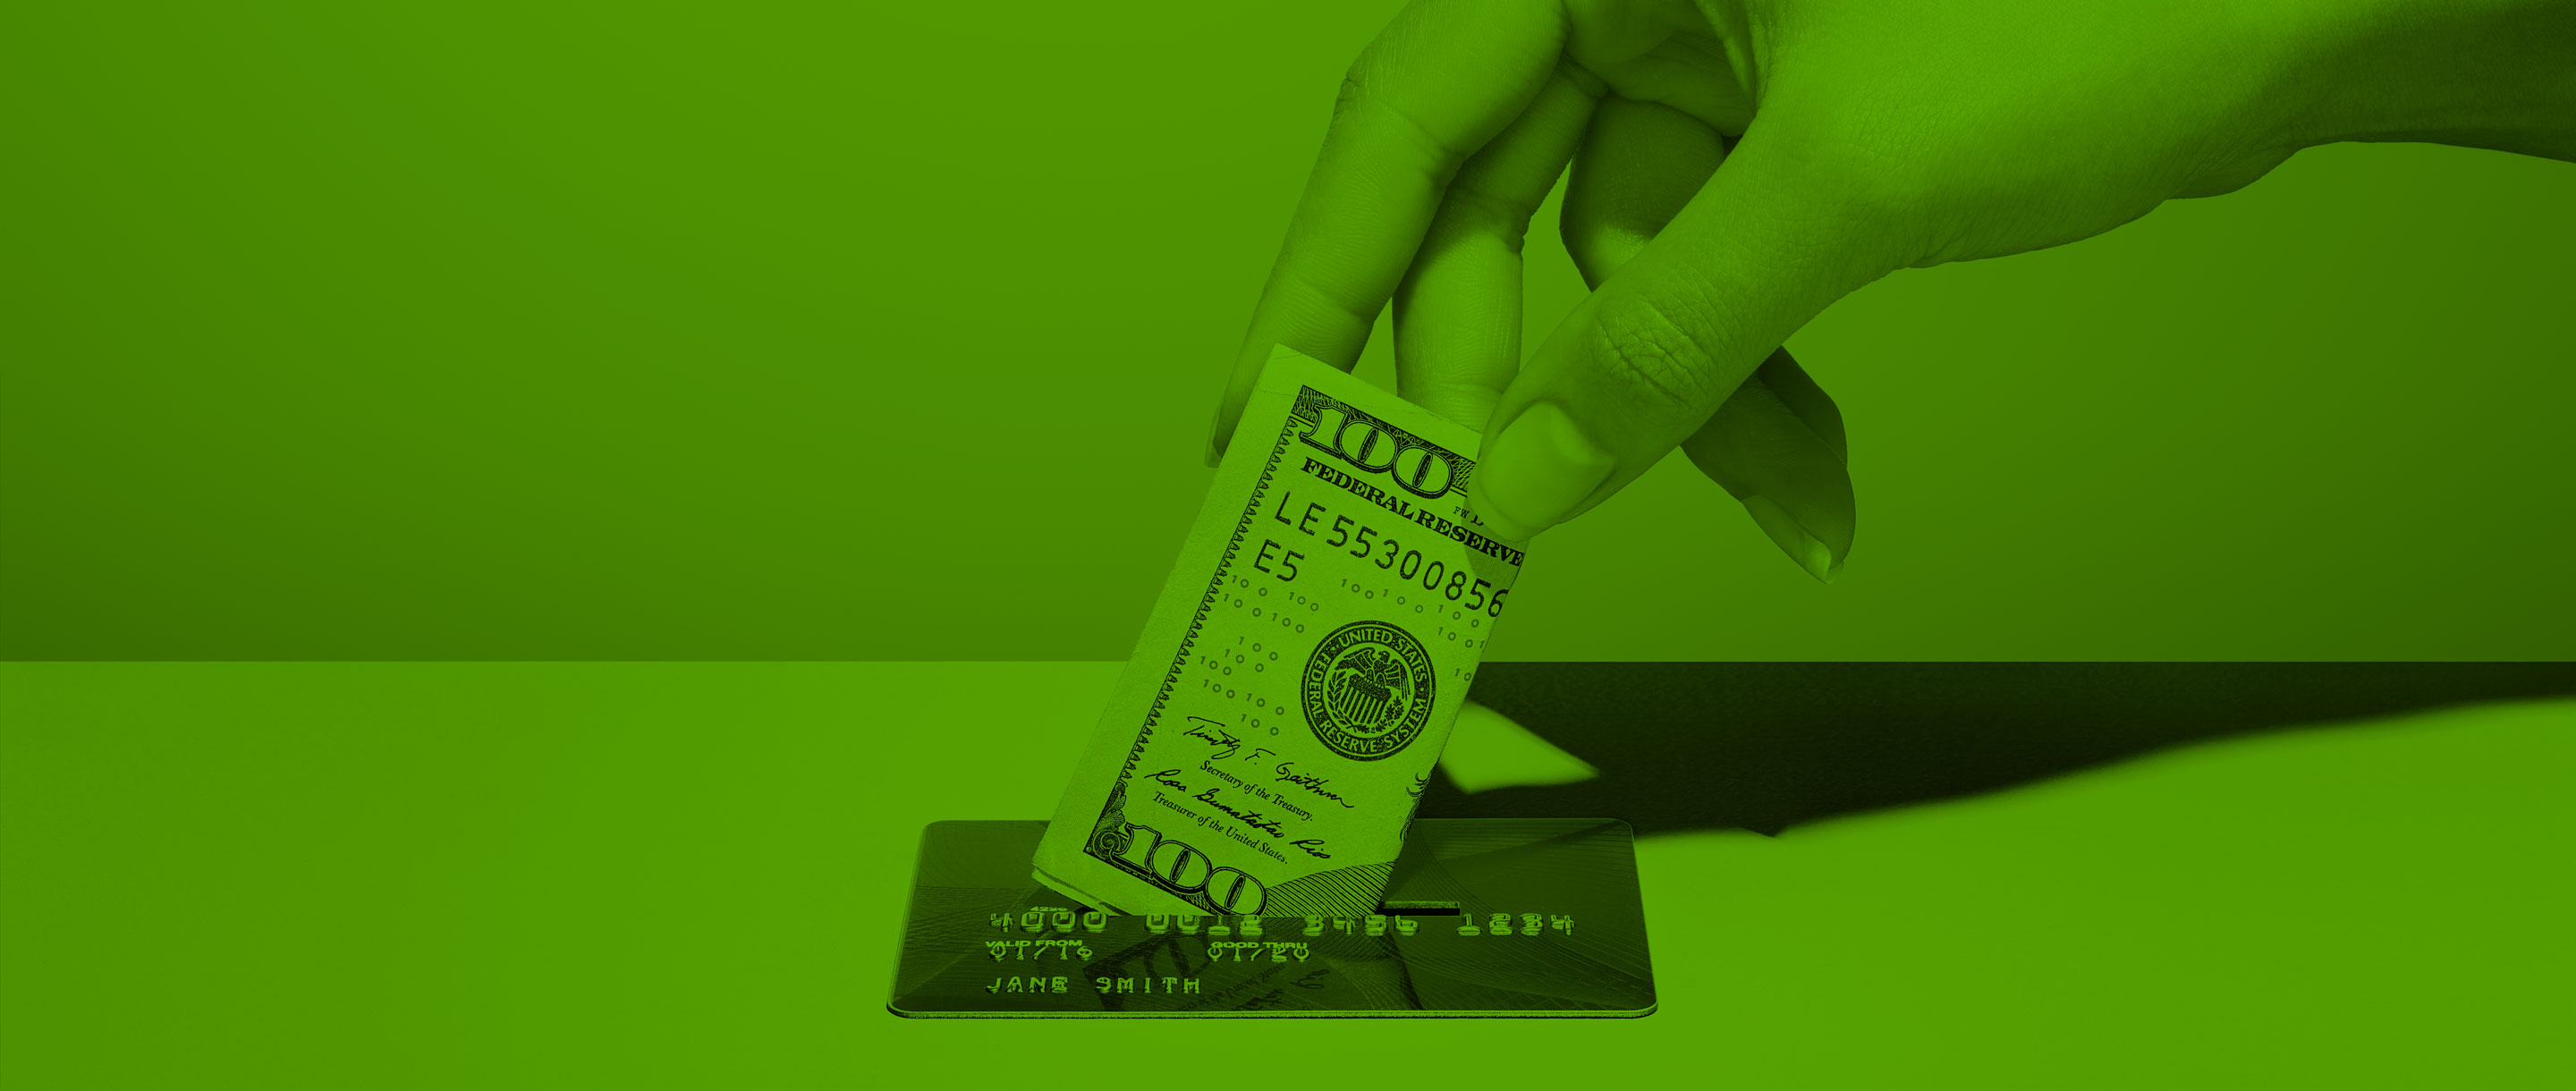 Best Prepaid Card Buying Guide Consumer Reports